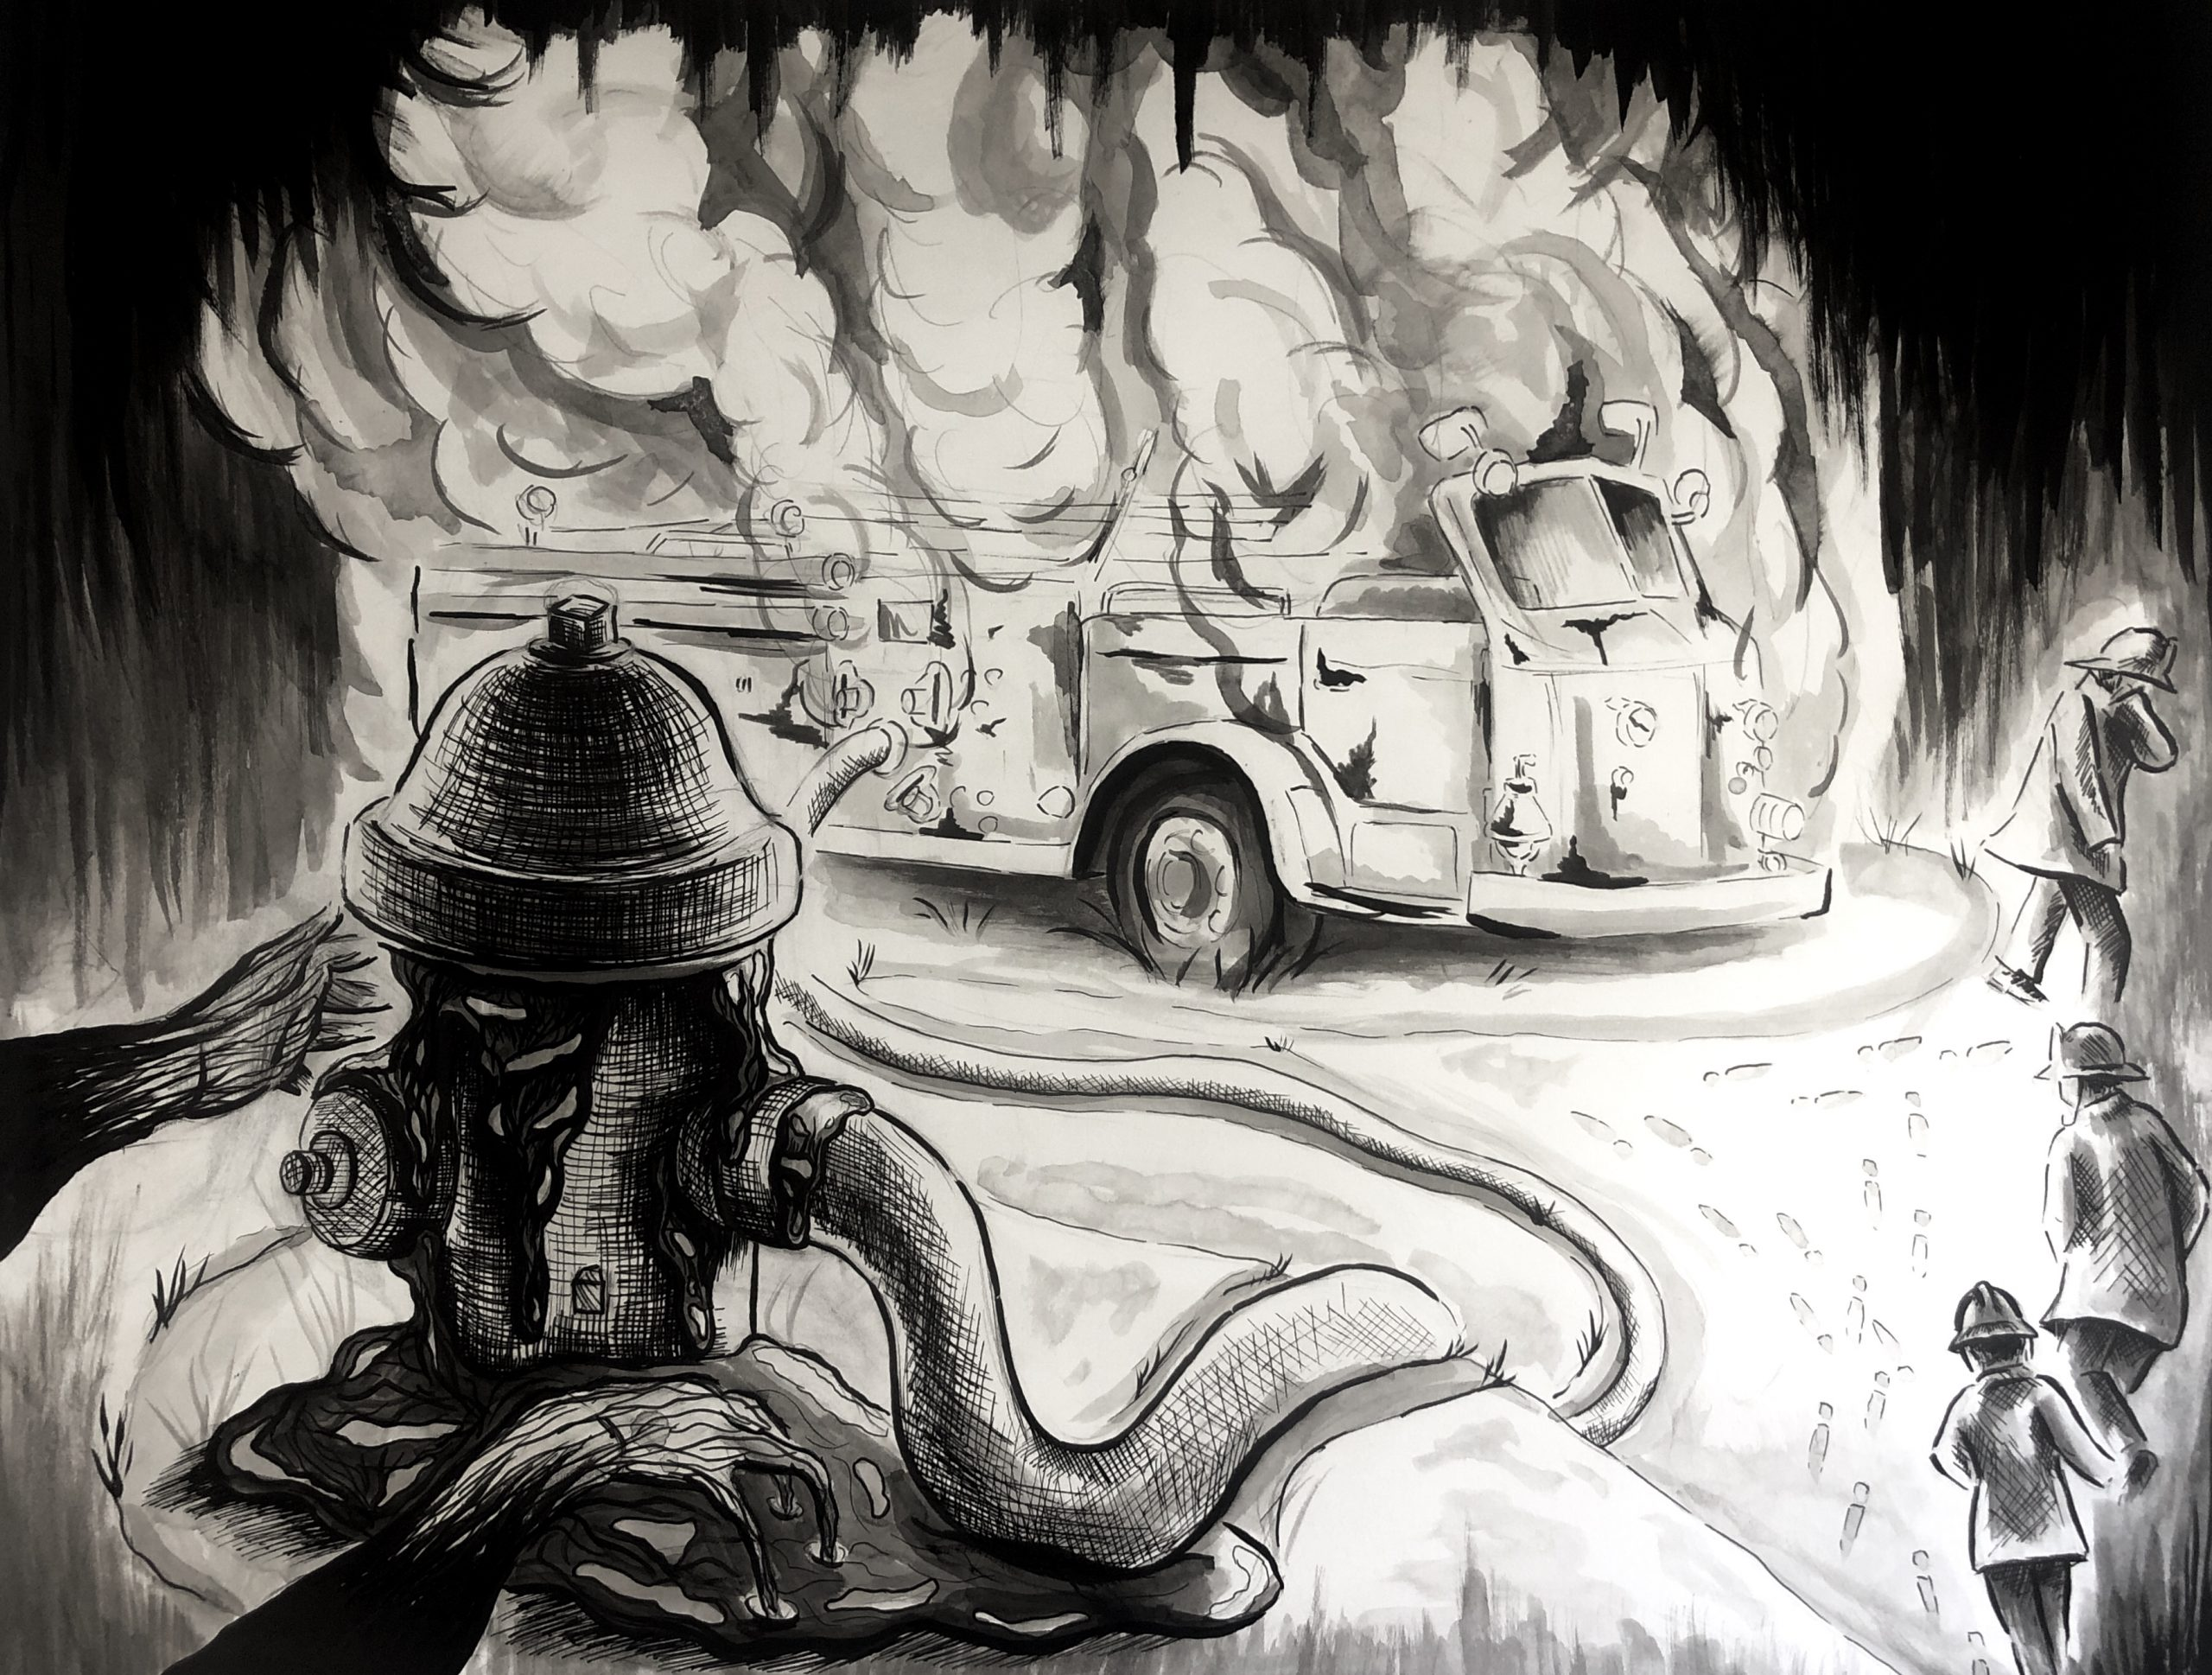 ink drawing by Hannah Kim of a fire truck burning